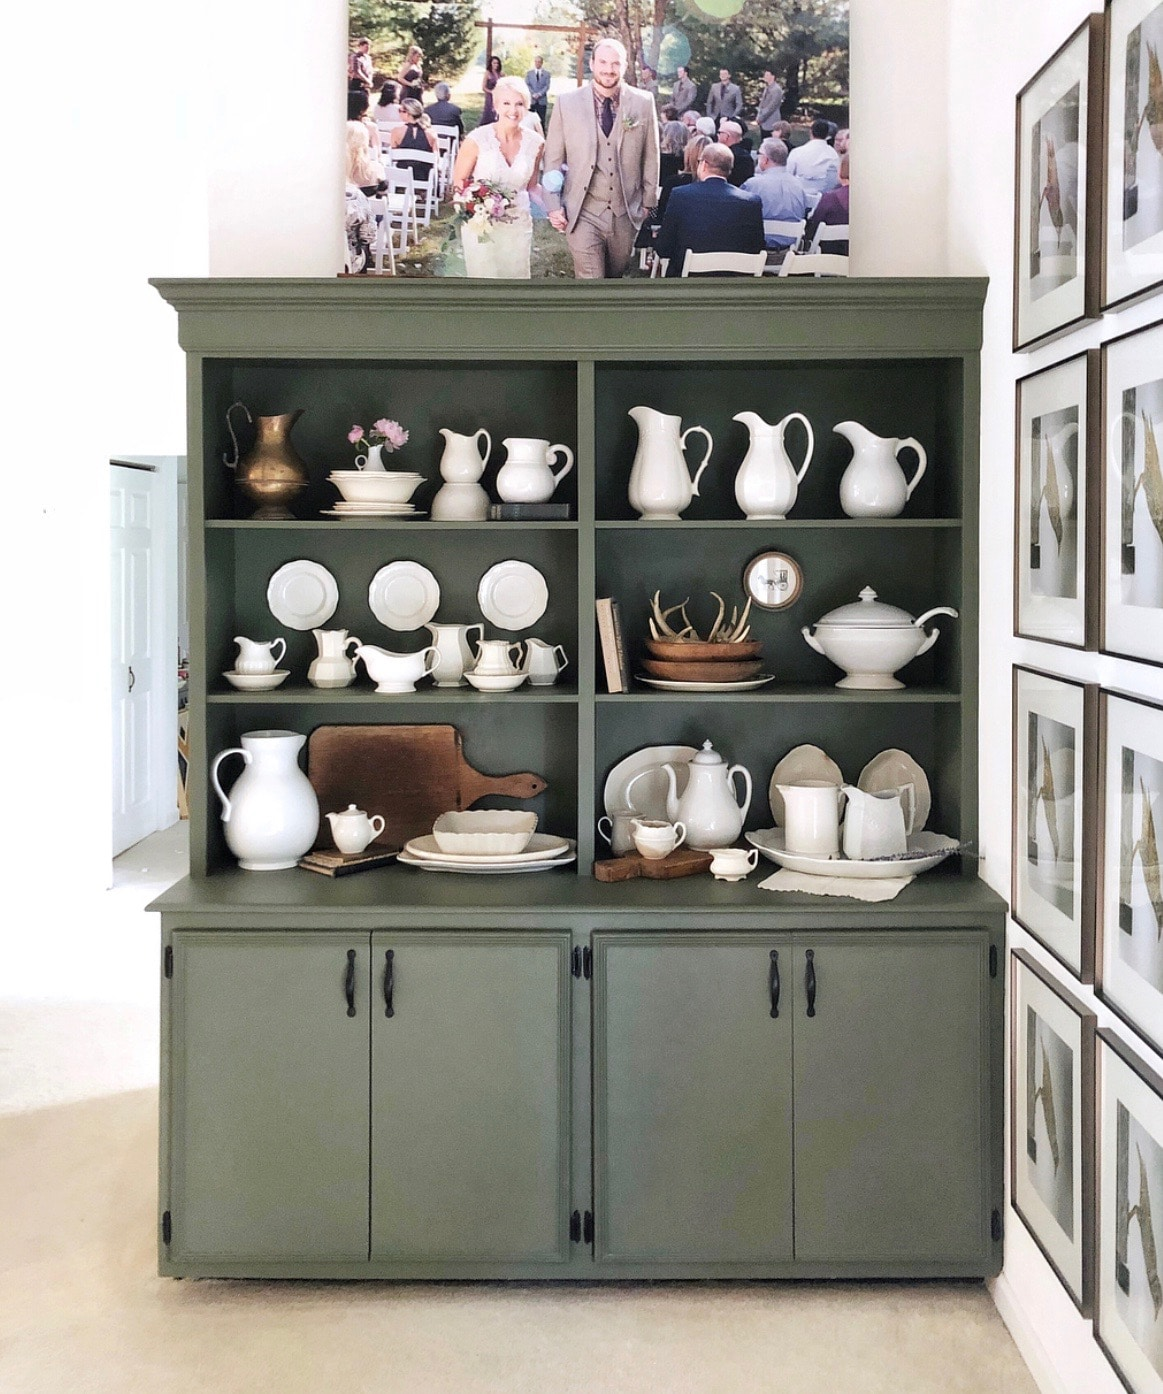 Fusion mineral paint colors used on a built in cabinet in color Bayberry